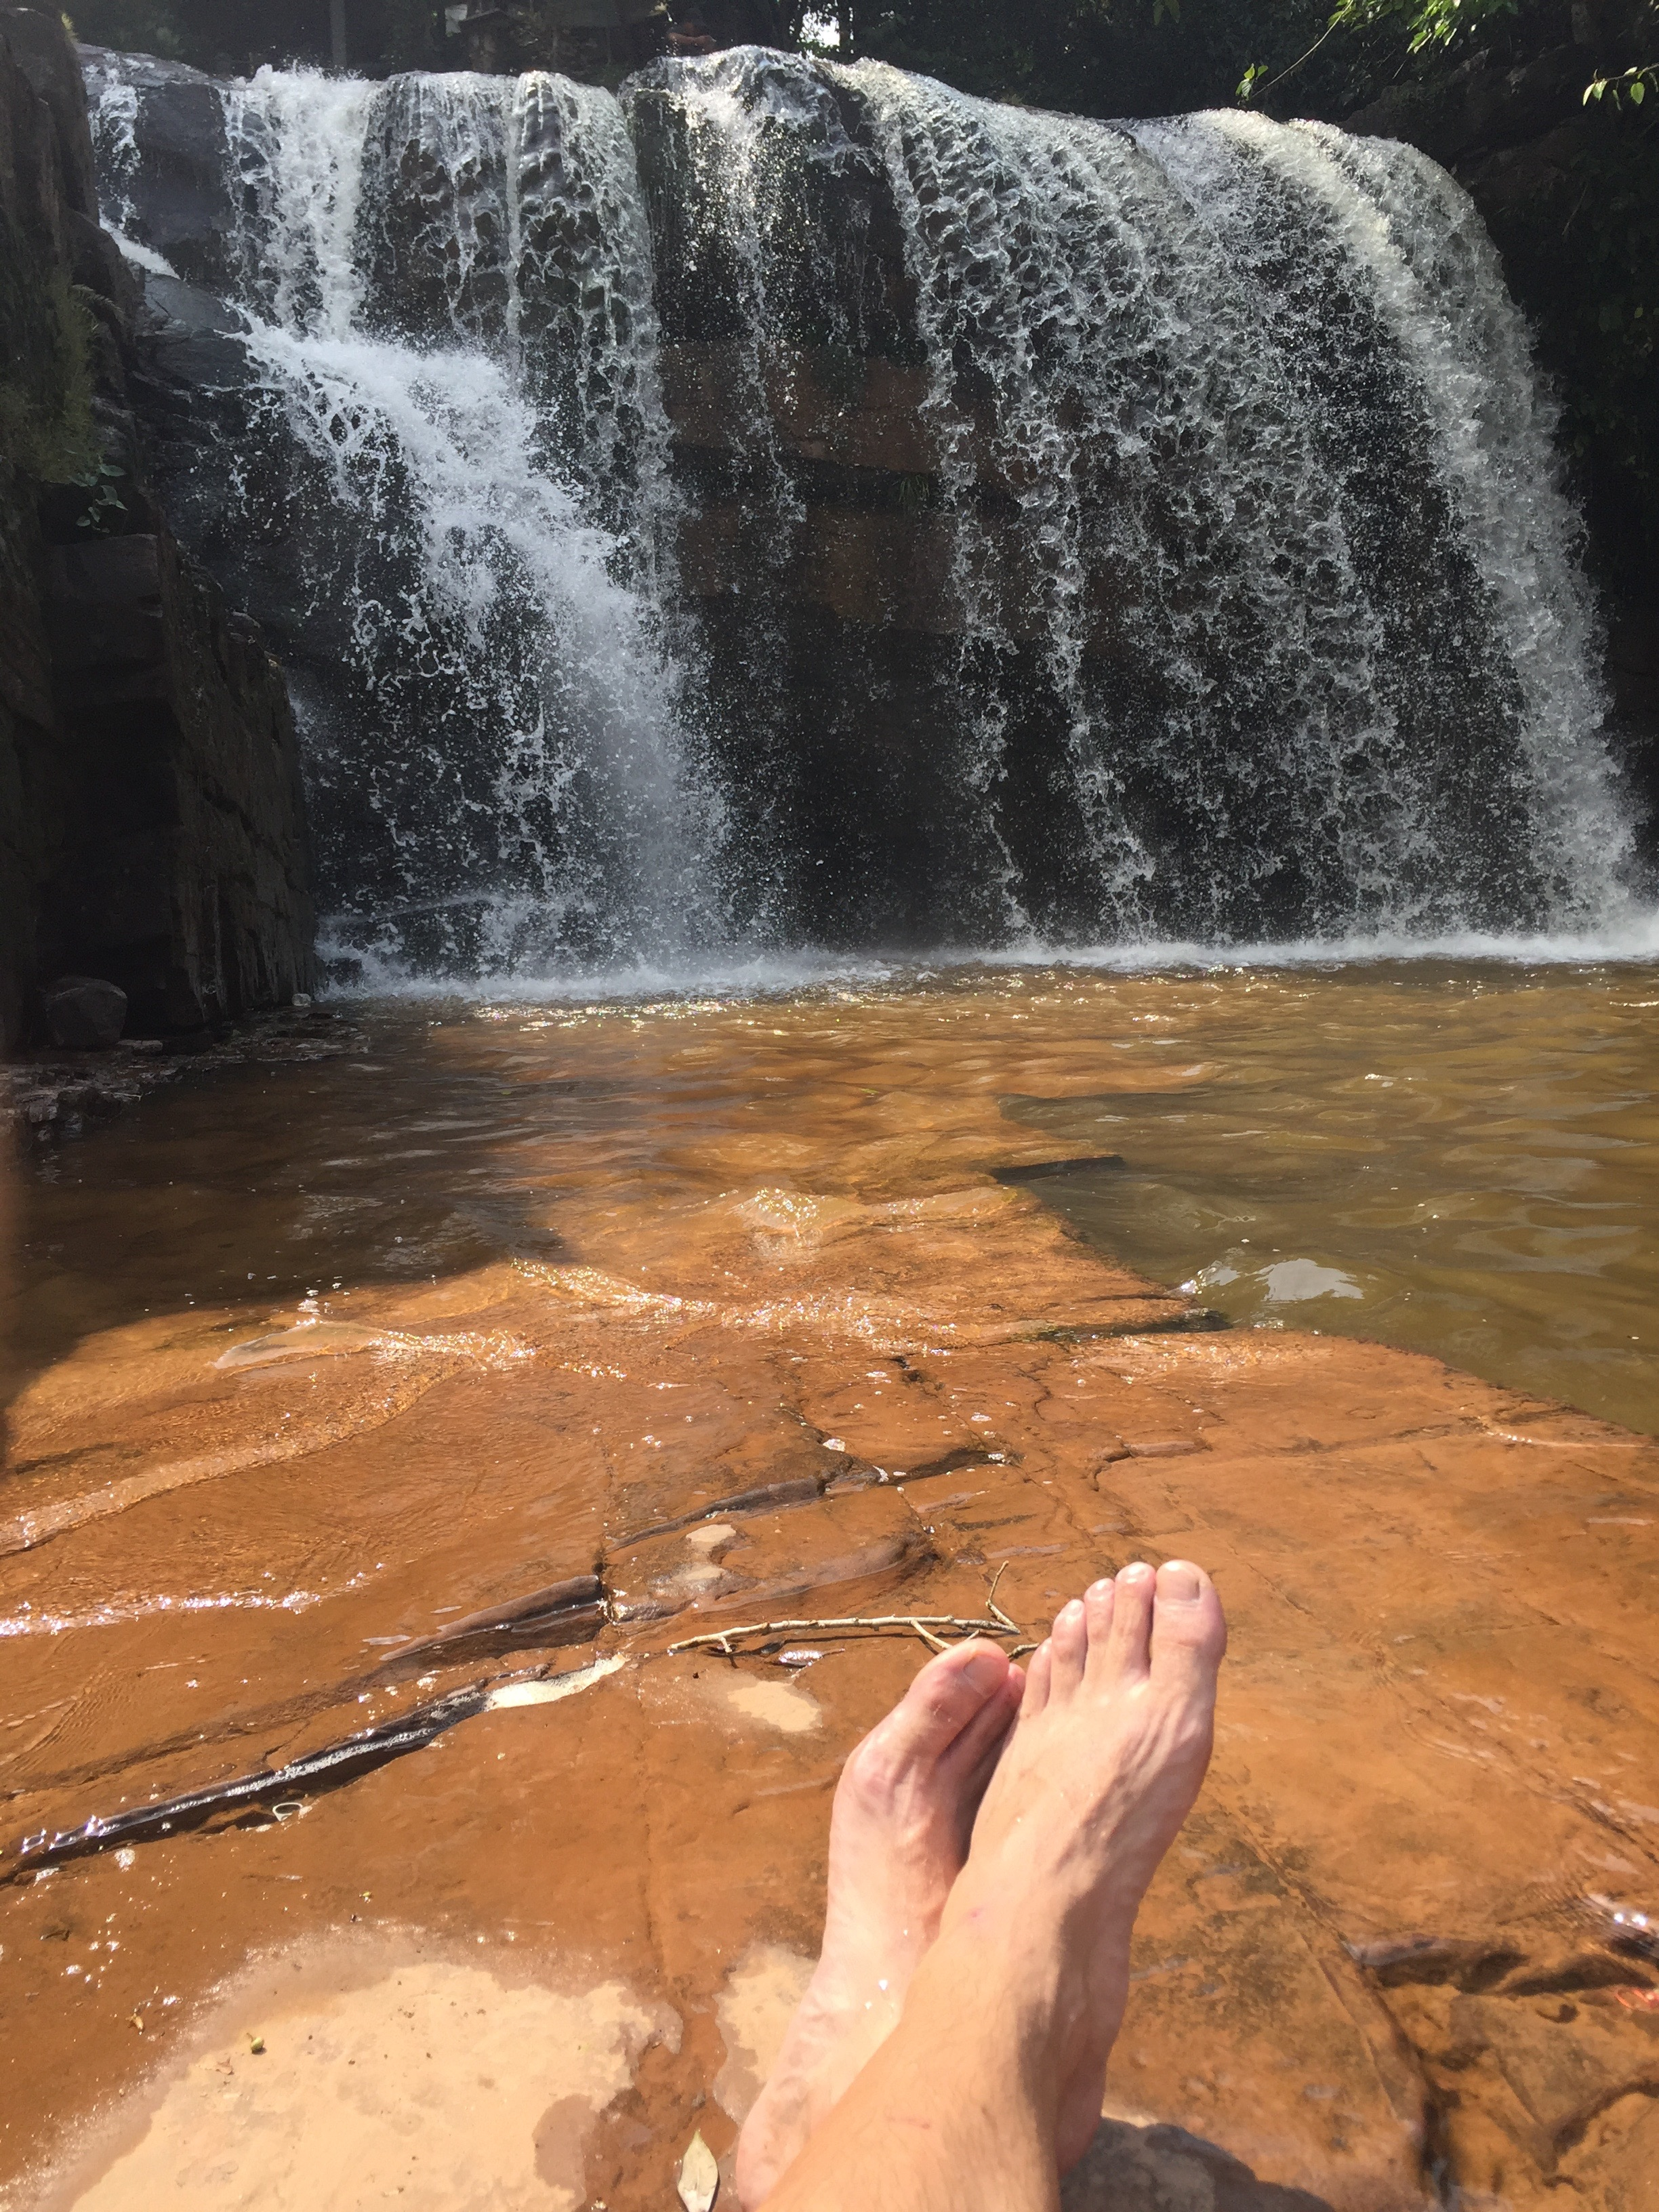 A day out at the waterfalls